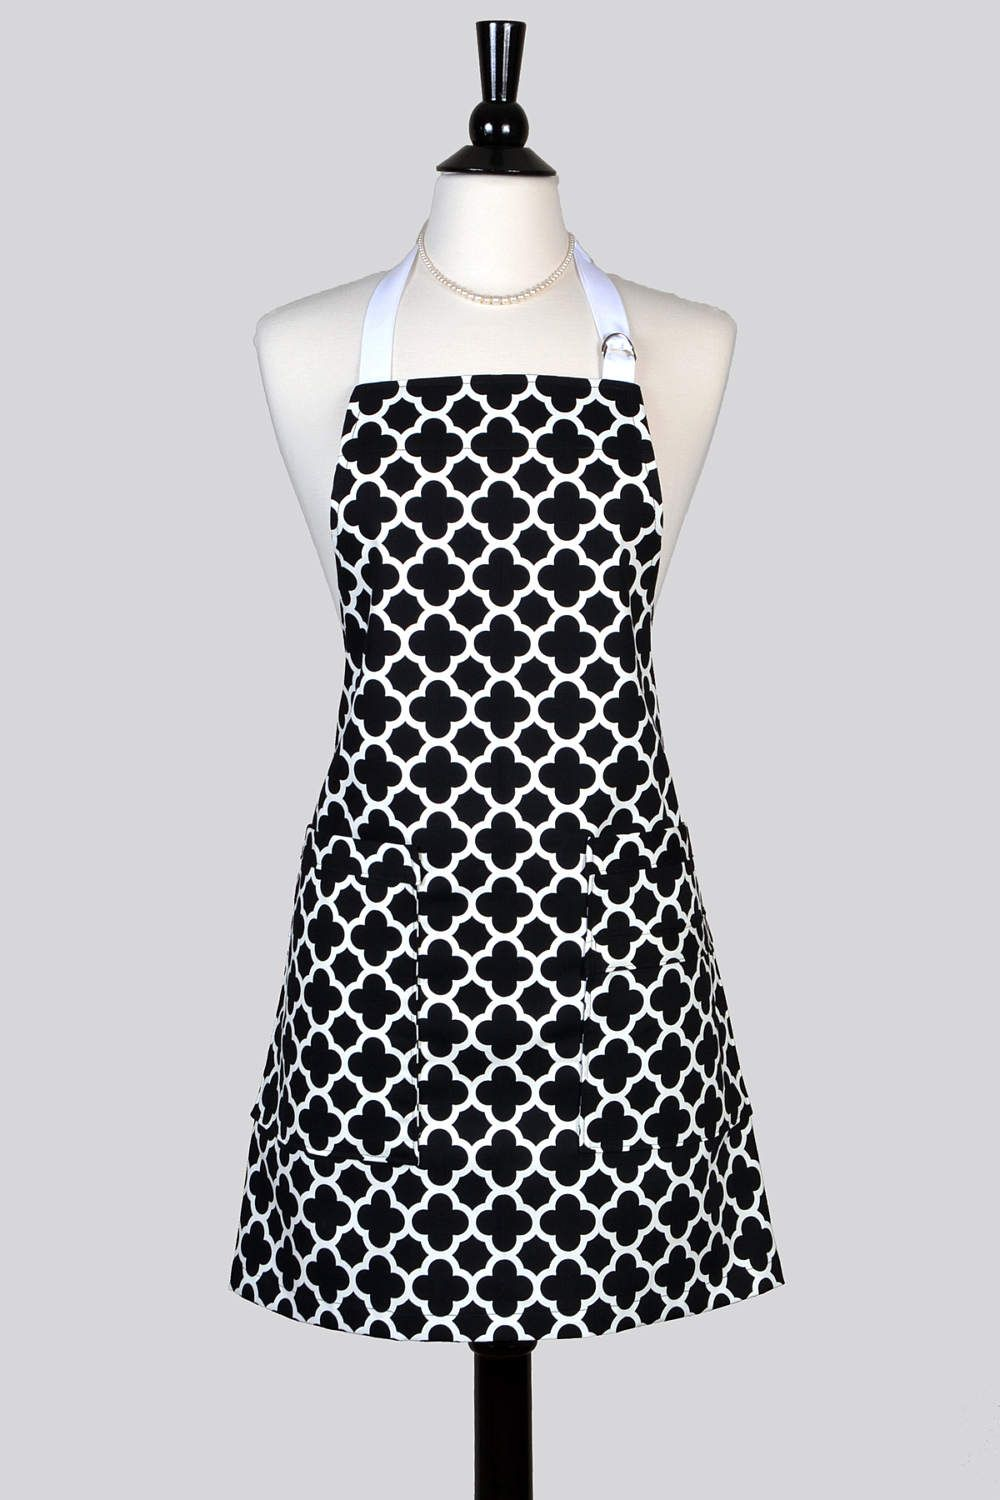 Womens Kitchen Apron Black And White Geometric Retro Vintage Chef Canvas  Apron With Two Large Pockets And Adjustable Neck Ties (DP)